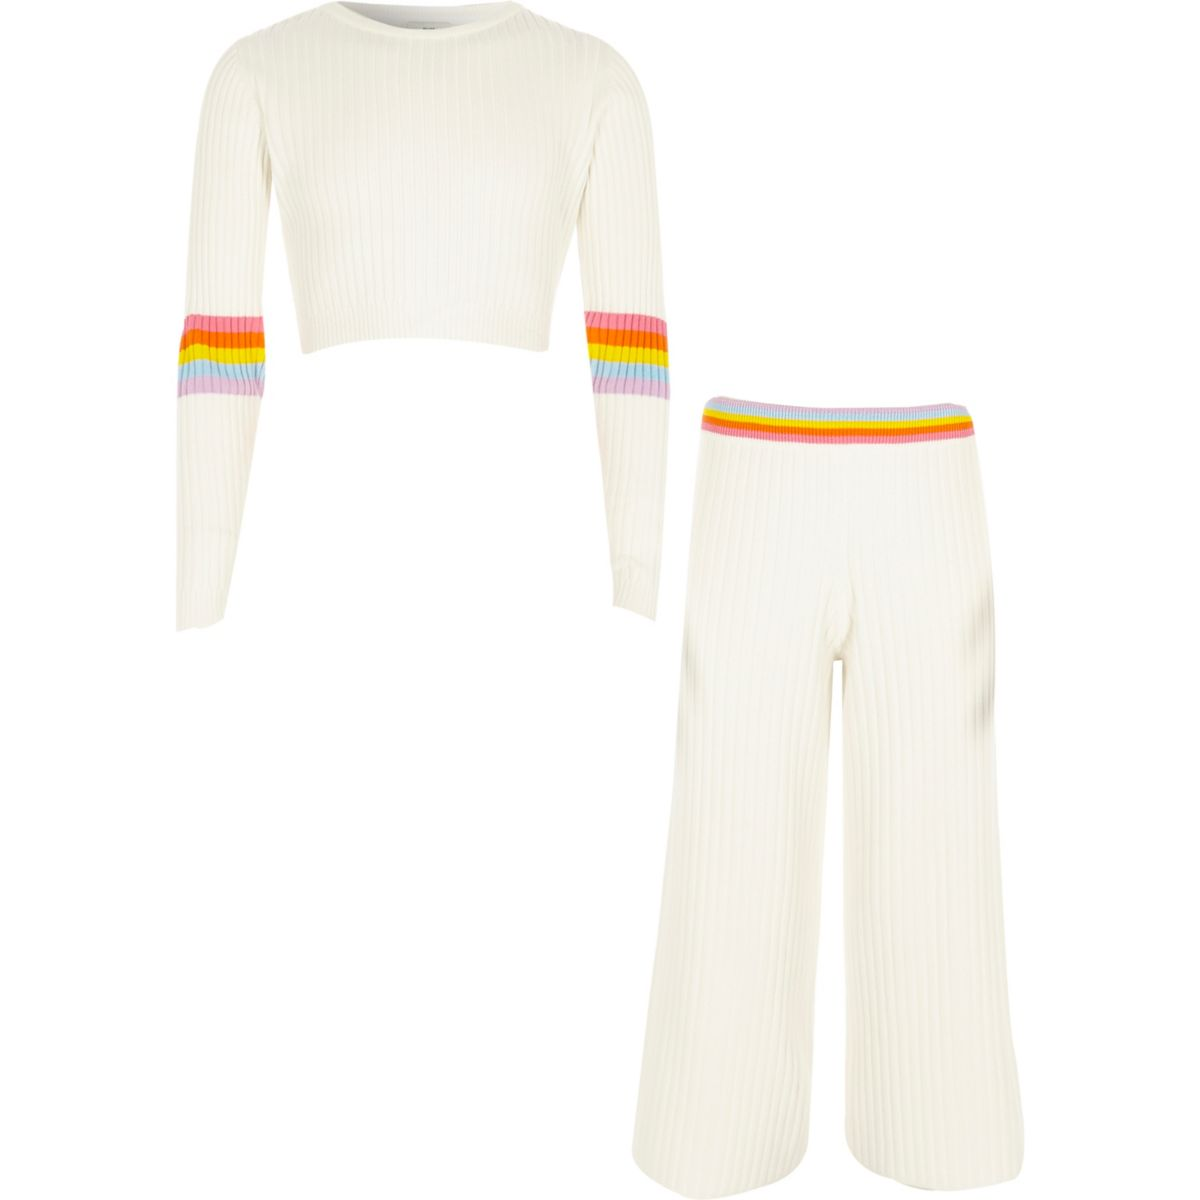 Girls cream rainbow cropped sweater outfit